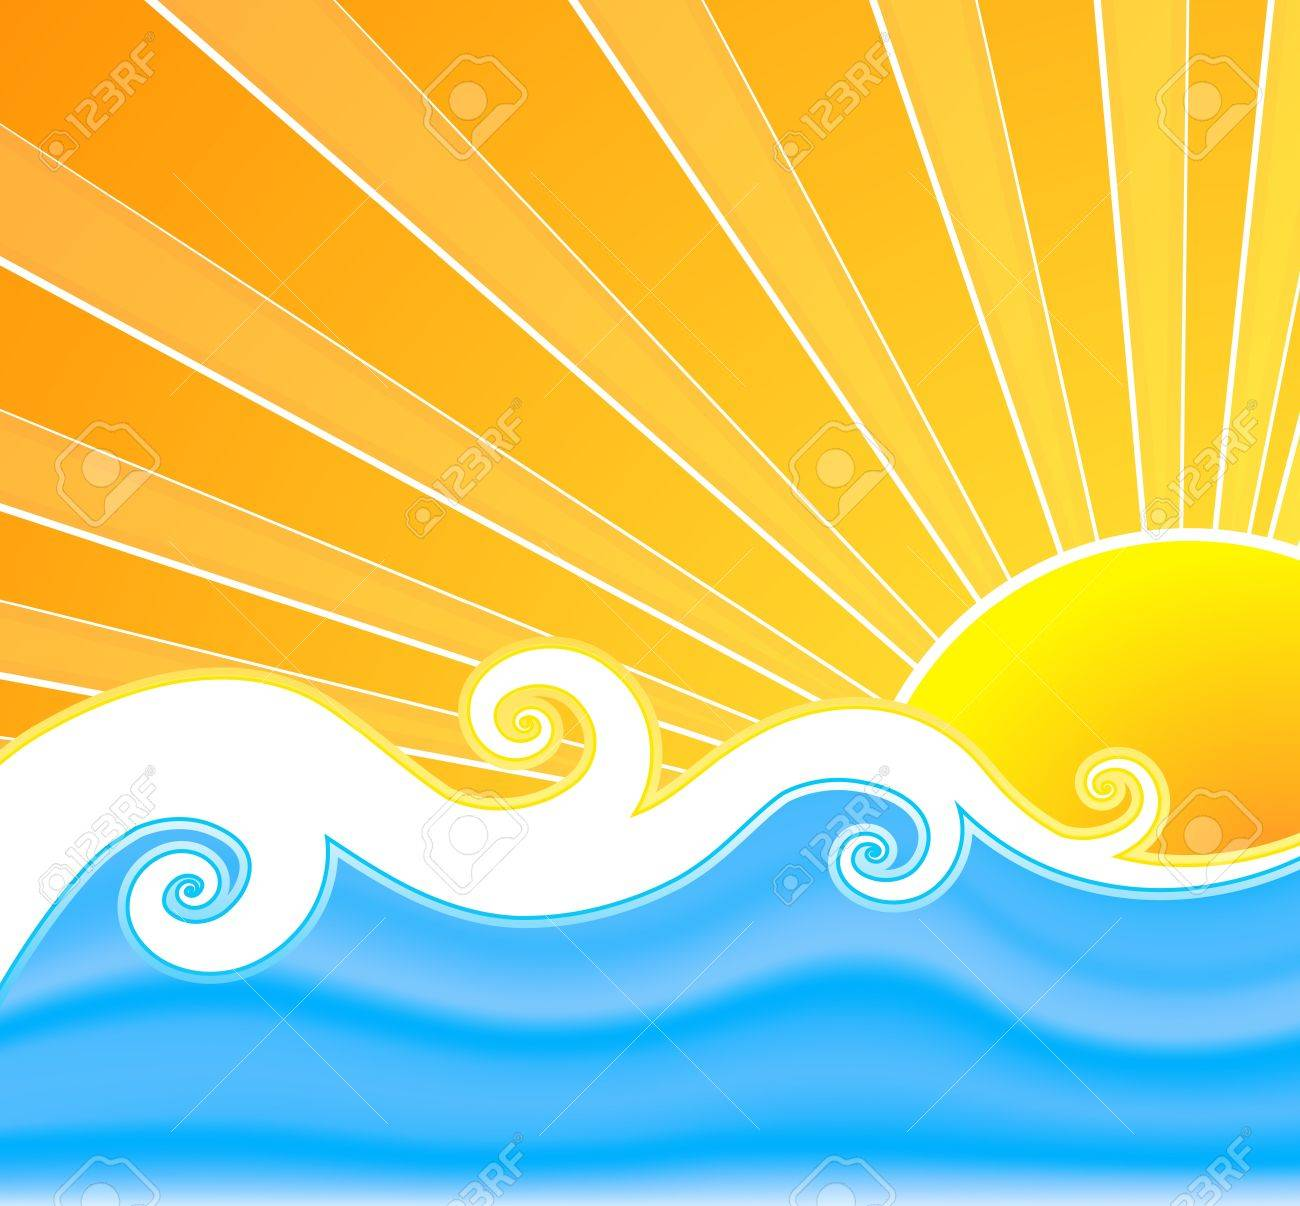 Vector illustration of a swirly retro summer background with beautiful sun rays, curly mesh water and wavy design in the middle. - 4036014